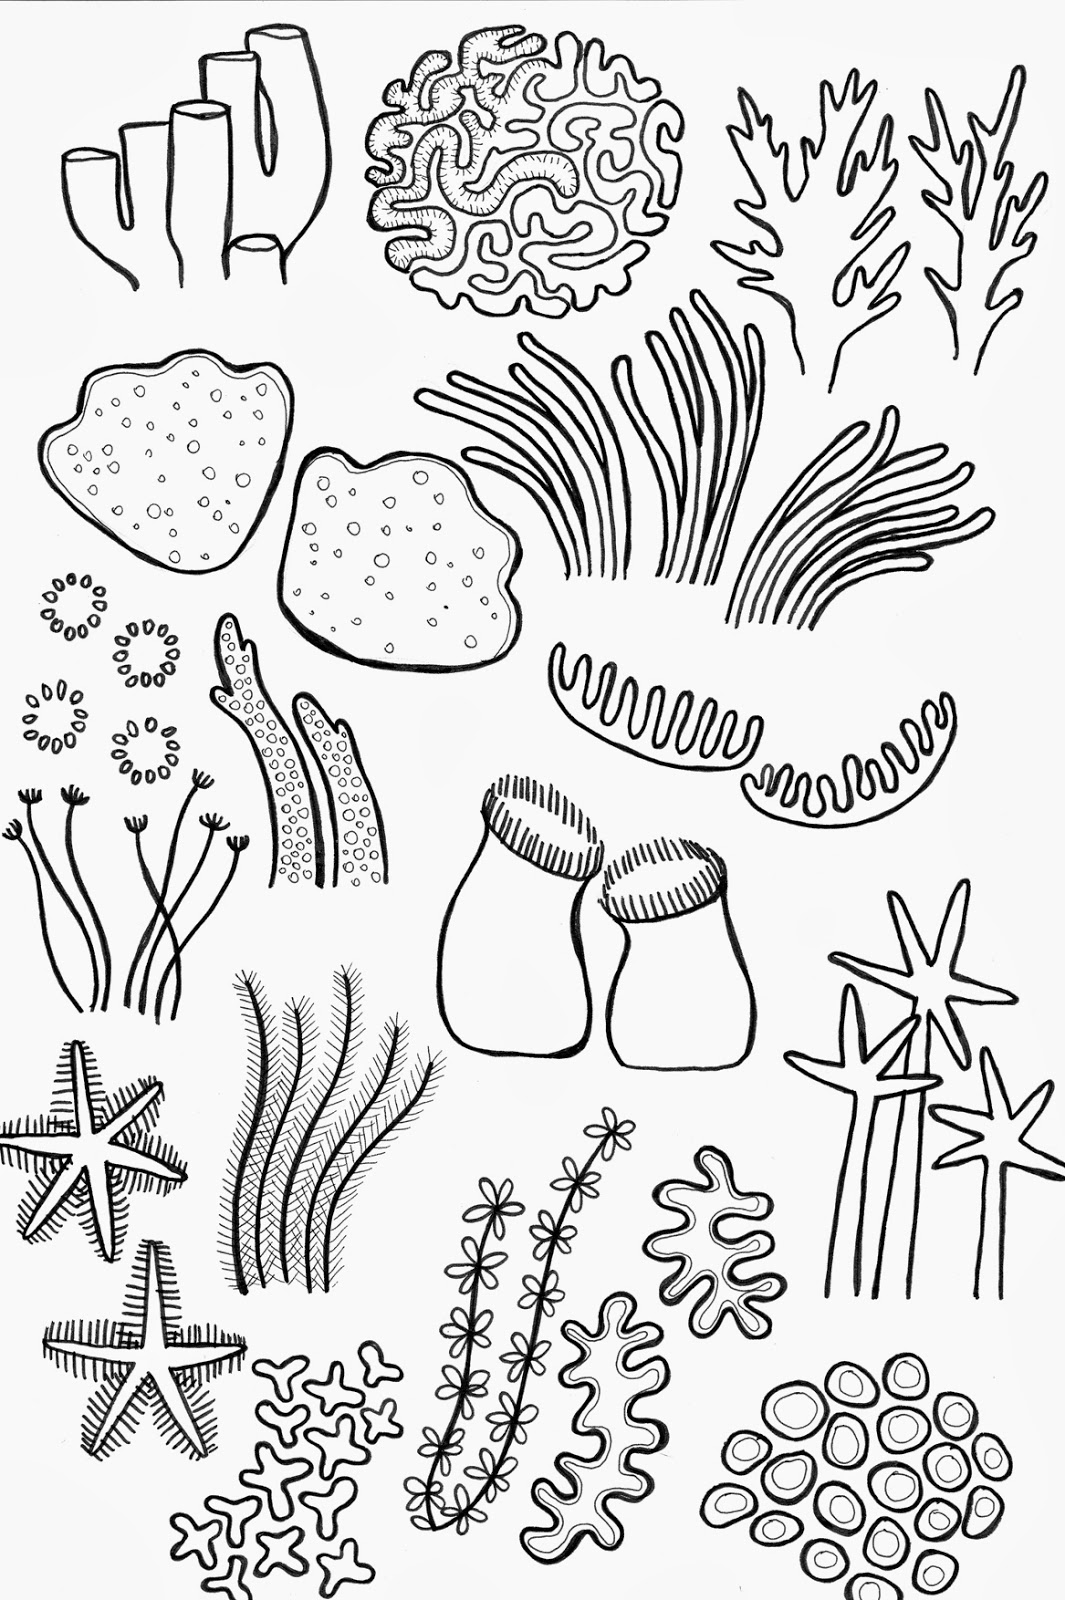 Drawn coral reef Fabric bloggery: Reef Fabric Barrier